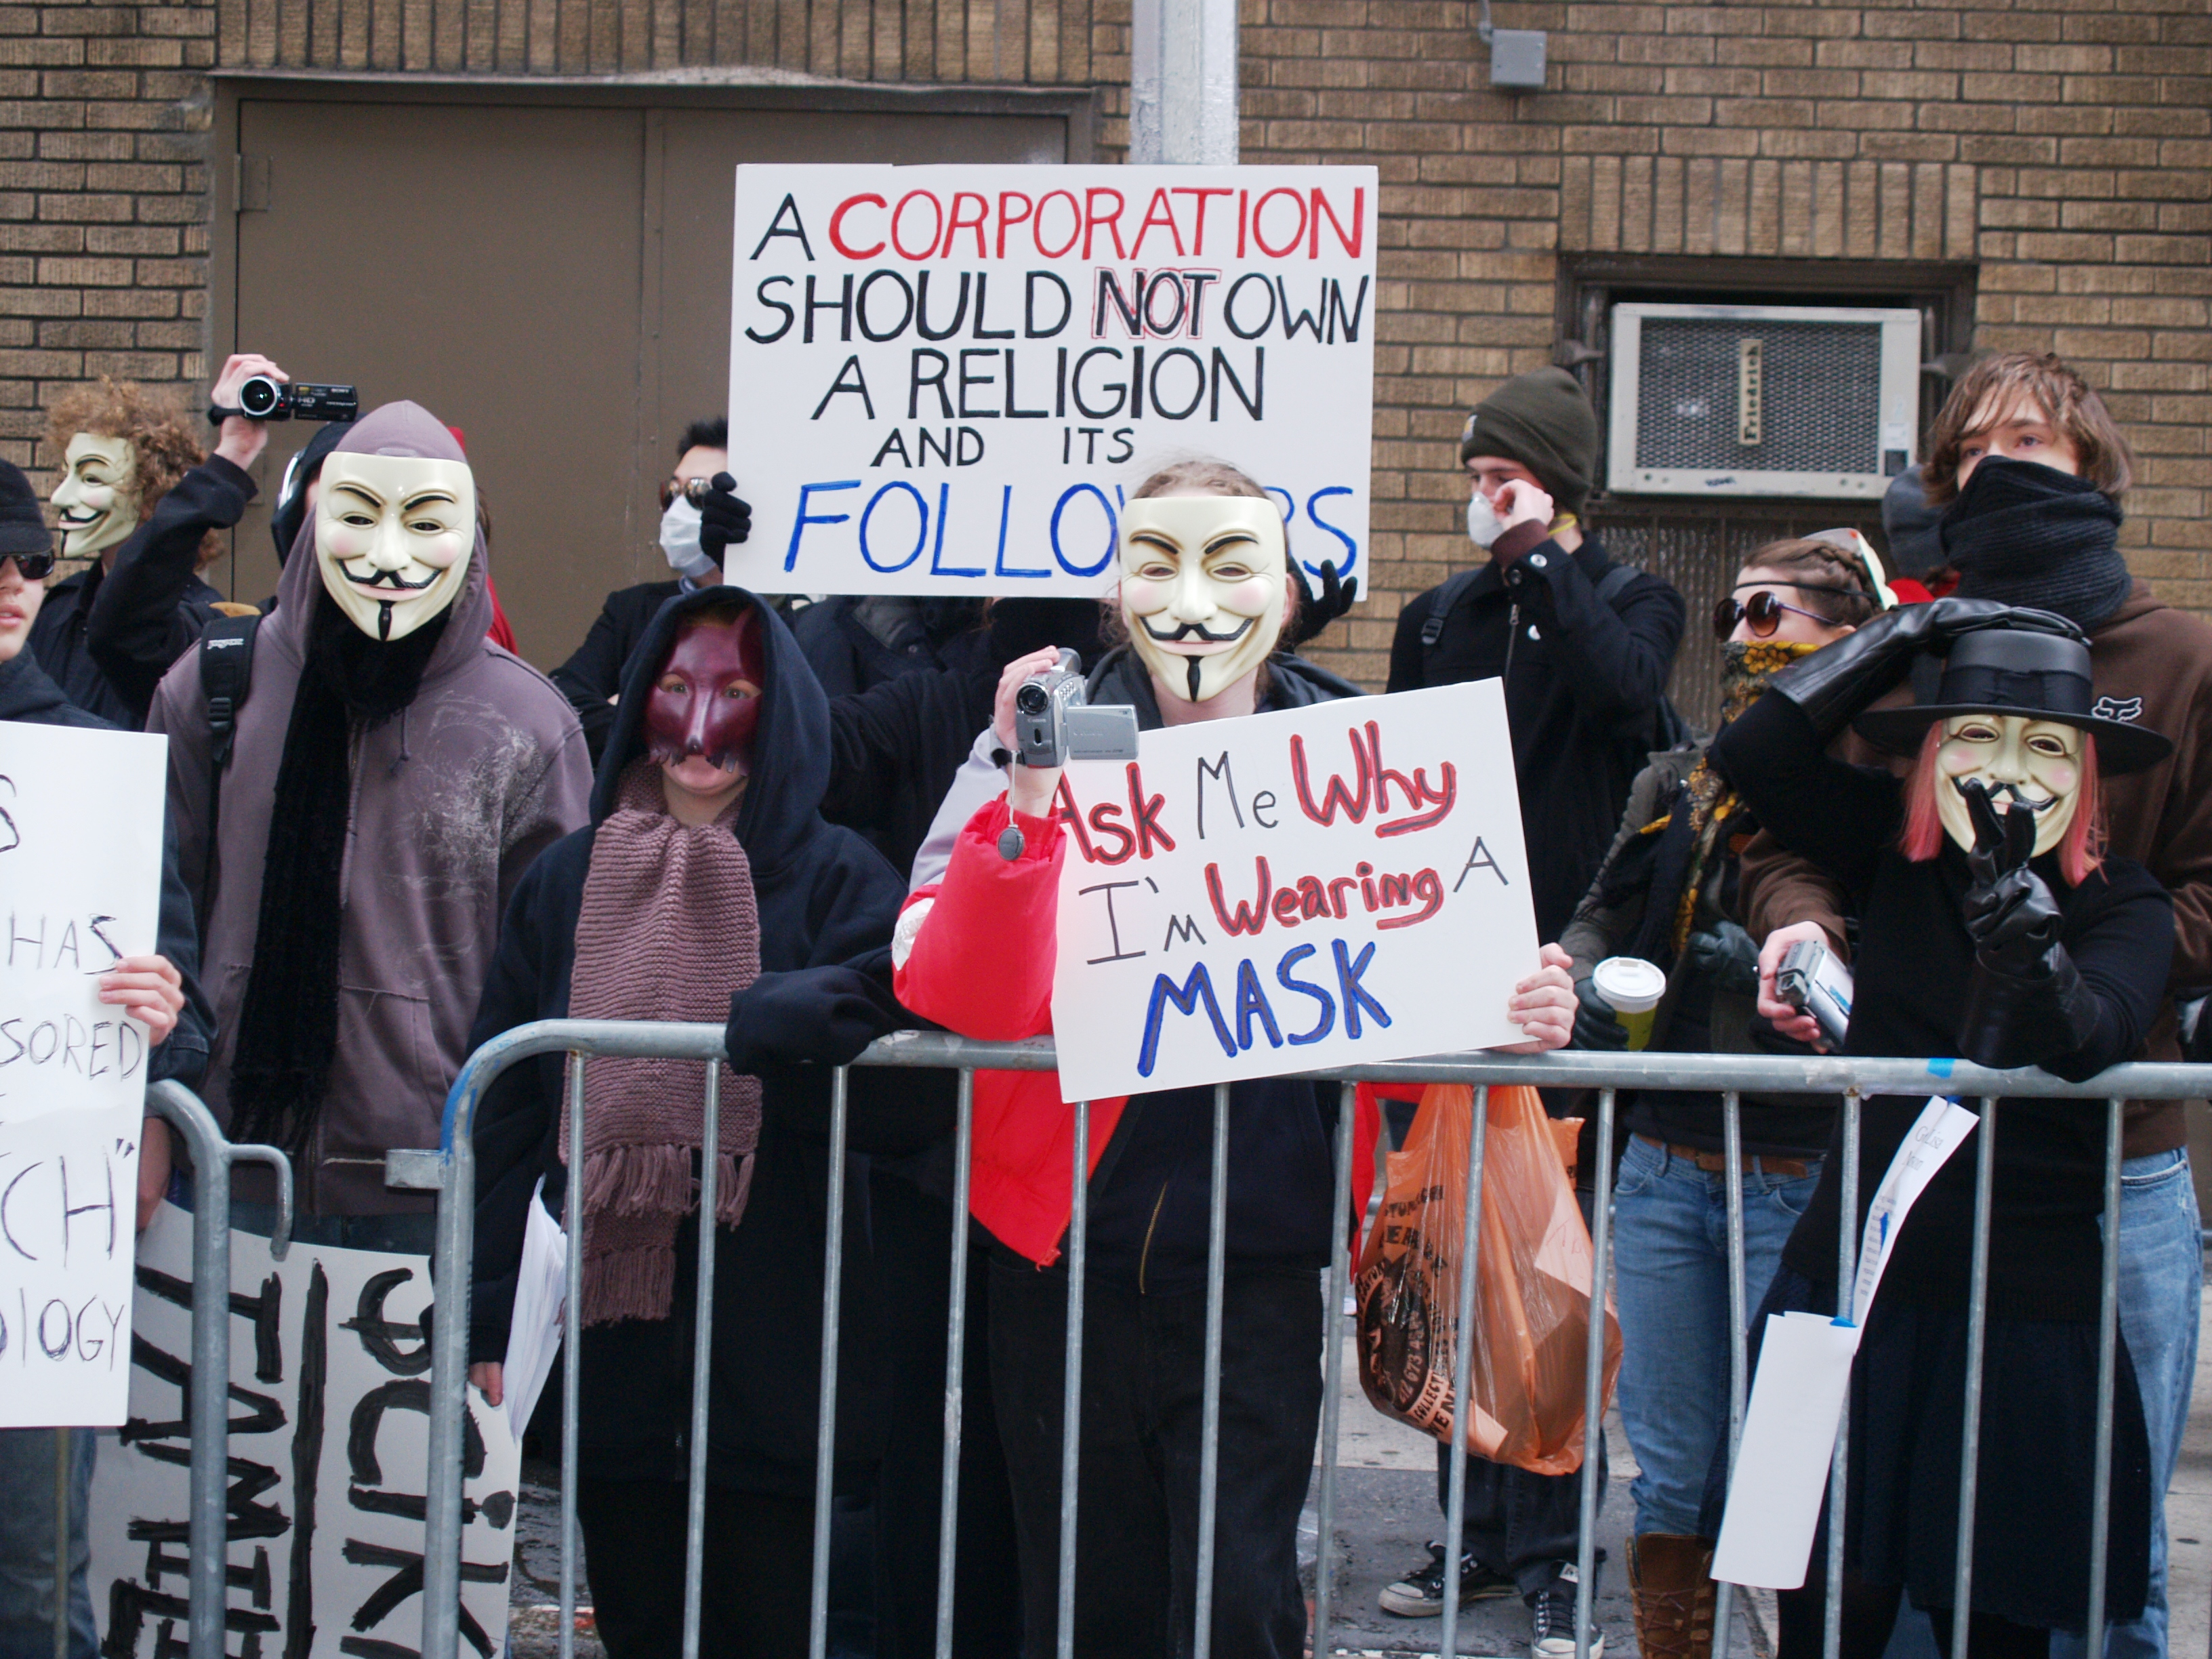 Protest group wearing masks and holding signs